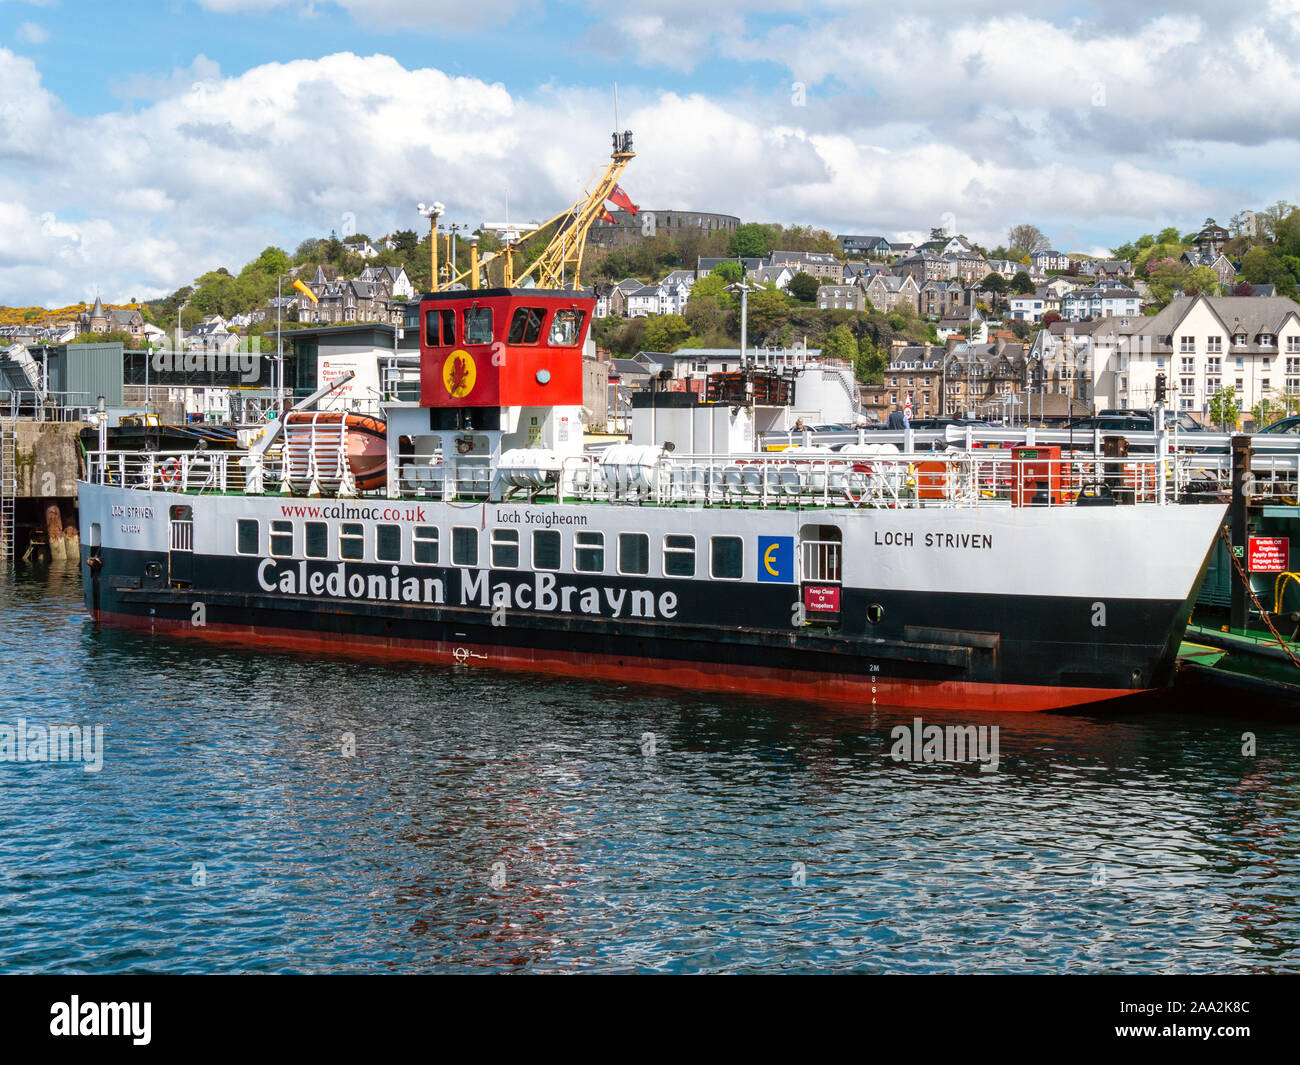 Caledonian Macbrayne ferry MV Loch Striven roll on roll off car ferry berthed at Oban Ferry Terminal, Argyll and Bute, Scotland, UK Stock Photo